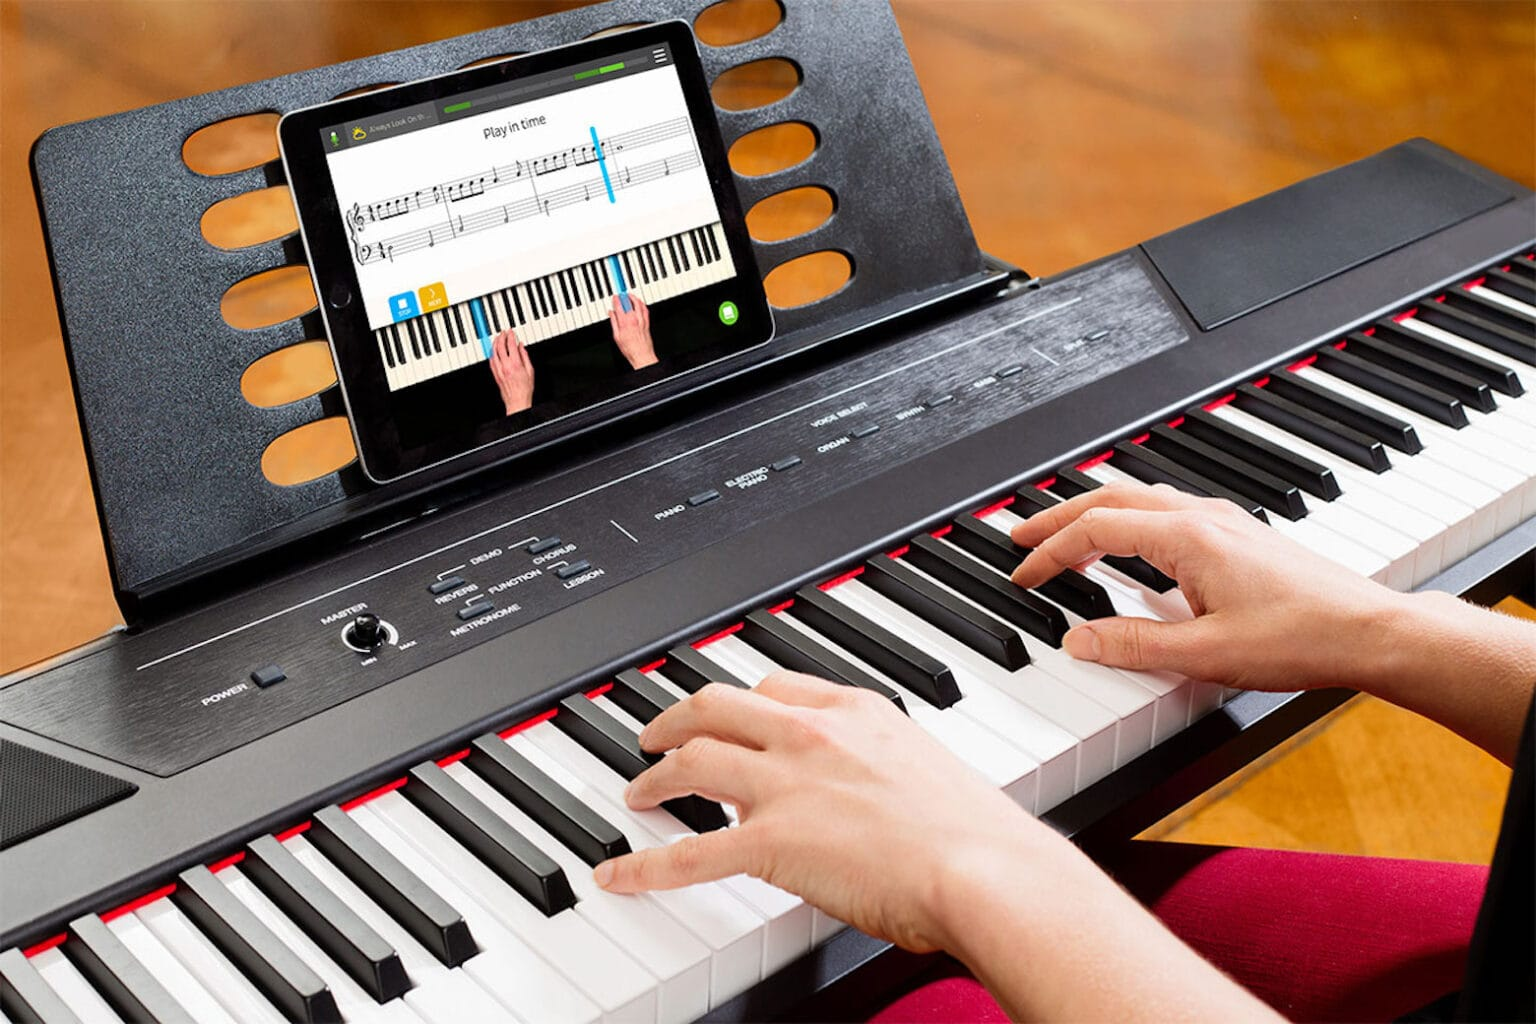 This AI powered app will help you learn and master the piano